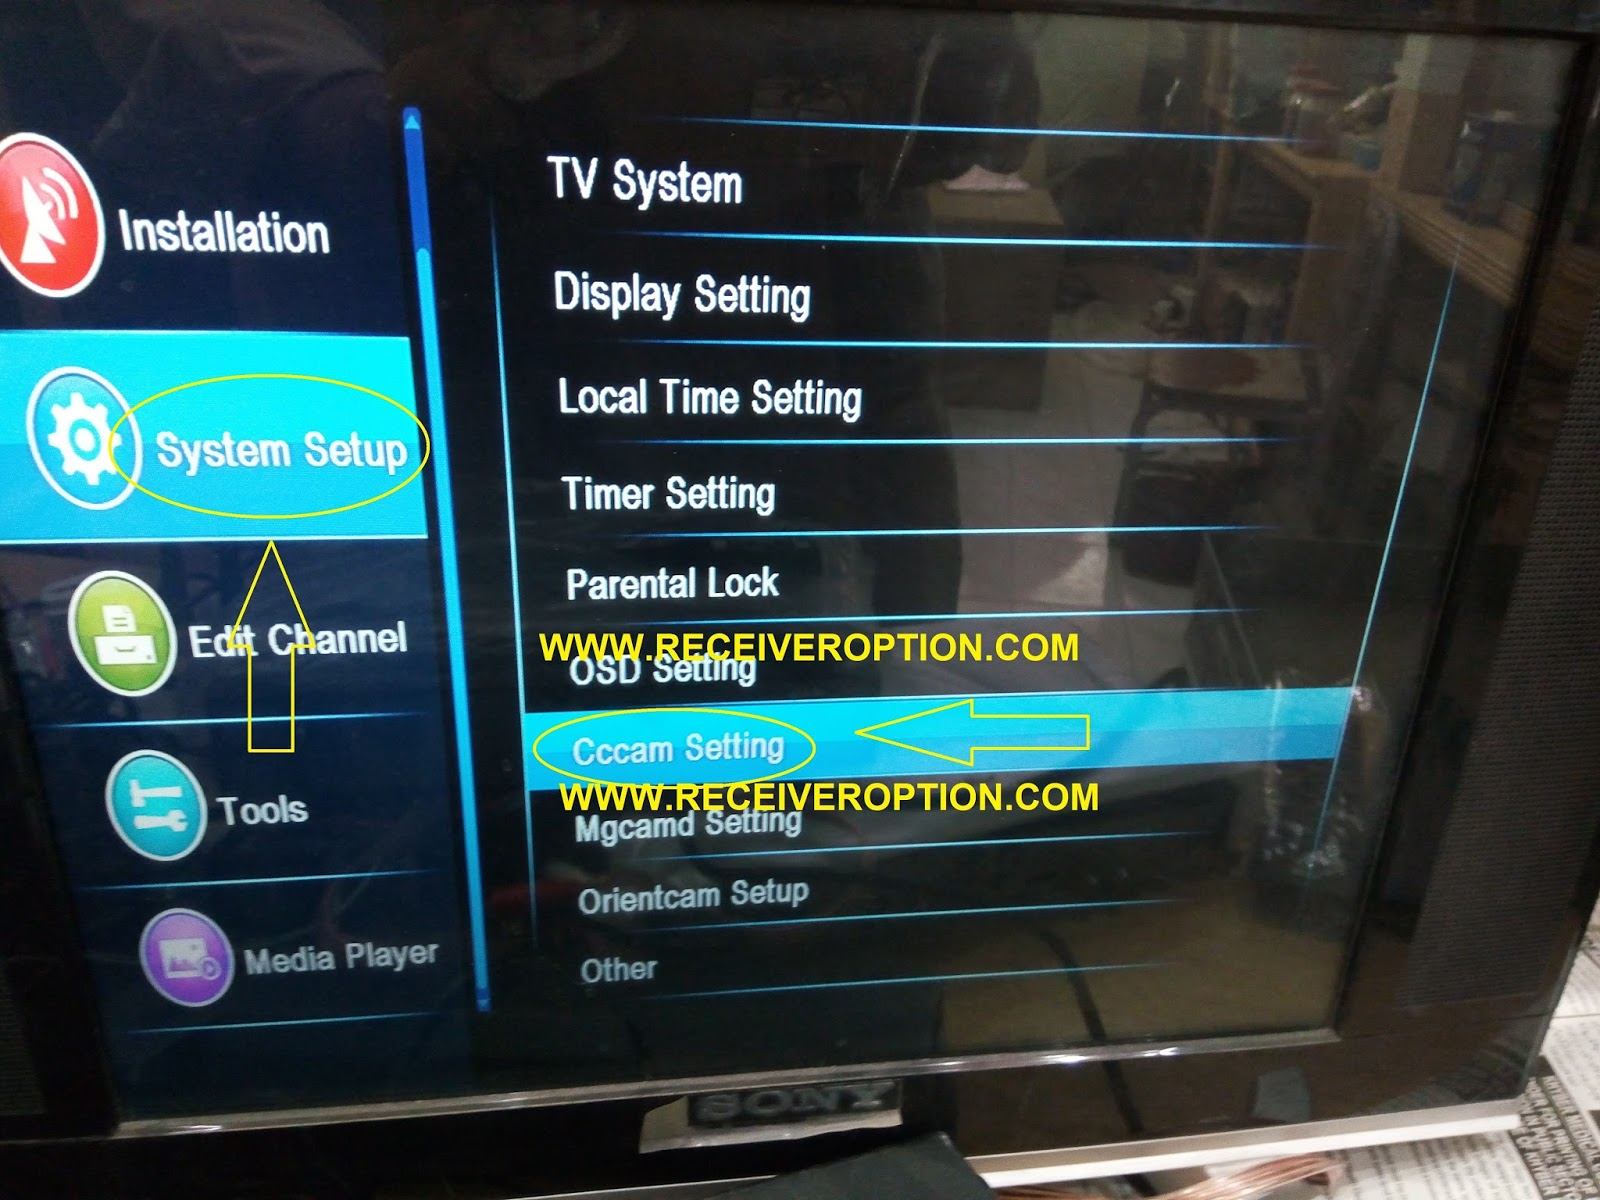 STAR TRACK ST-6000 HD RECEIVER CCCAM OPTION - HOW TO ENTER BISS KEY